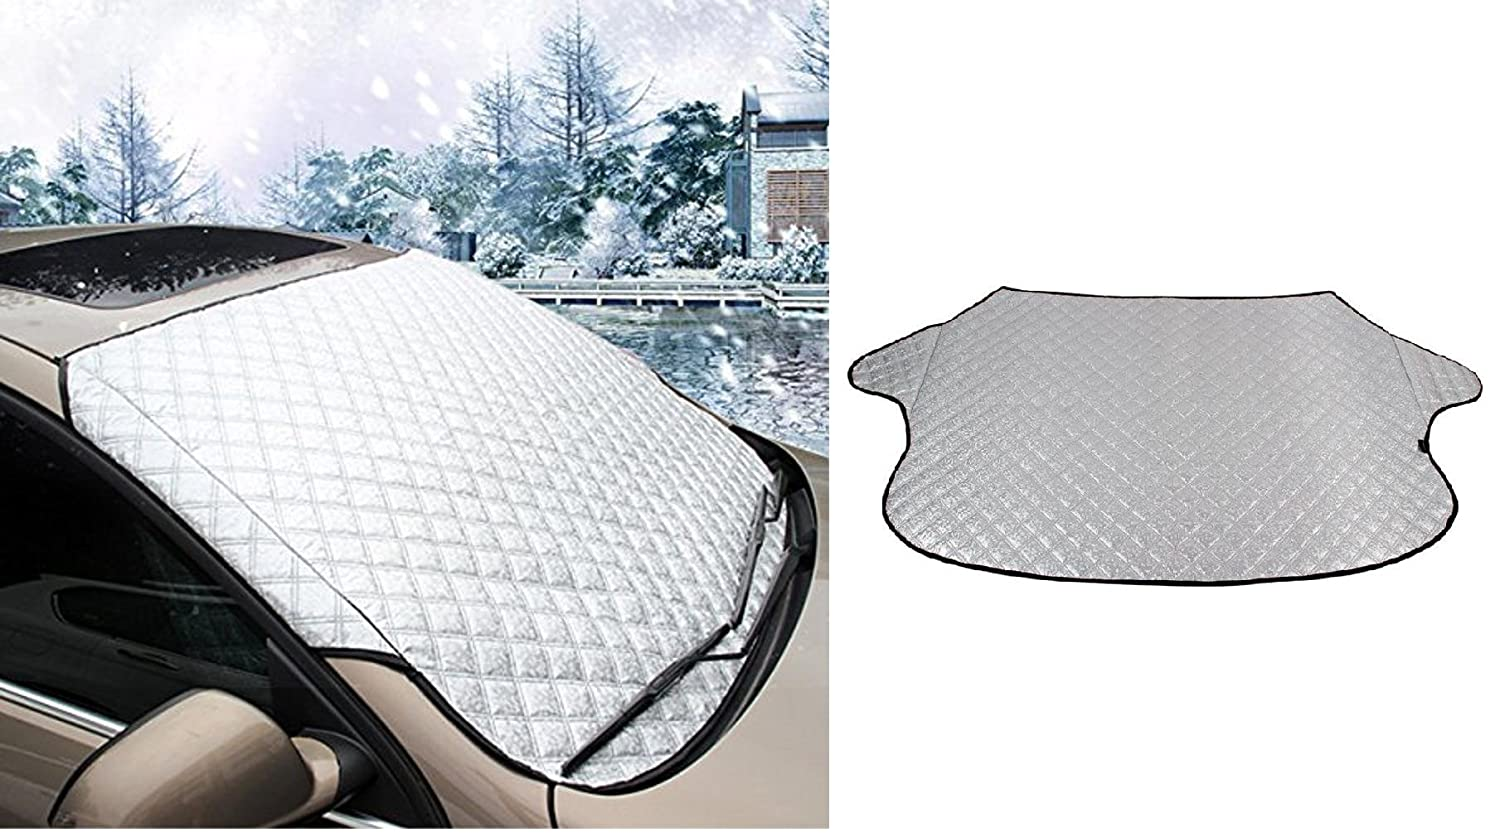 Car Windshield Snow Cover /& Sunshade Protector All Weather 52 Weeks a Year Dependable Industries inc